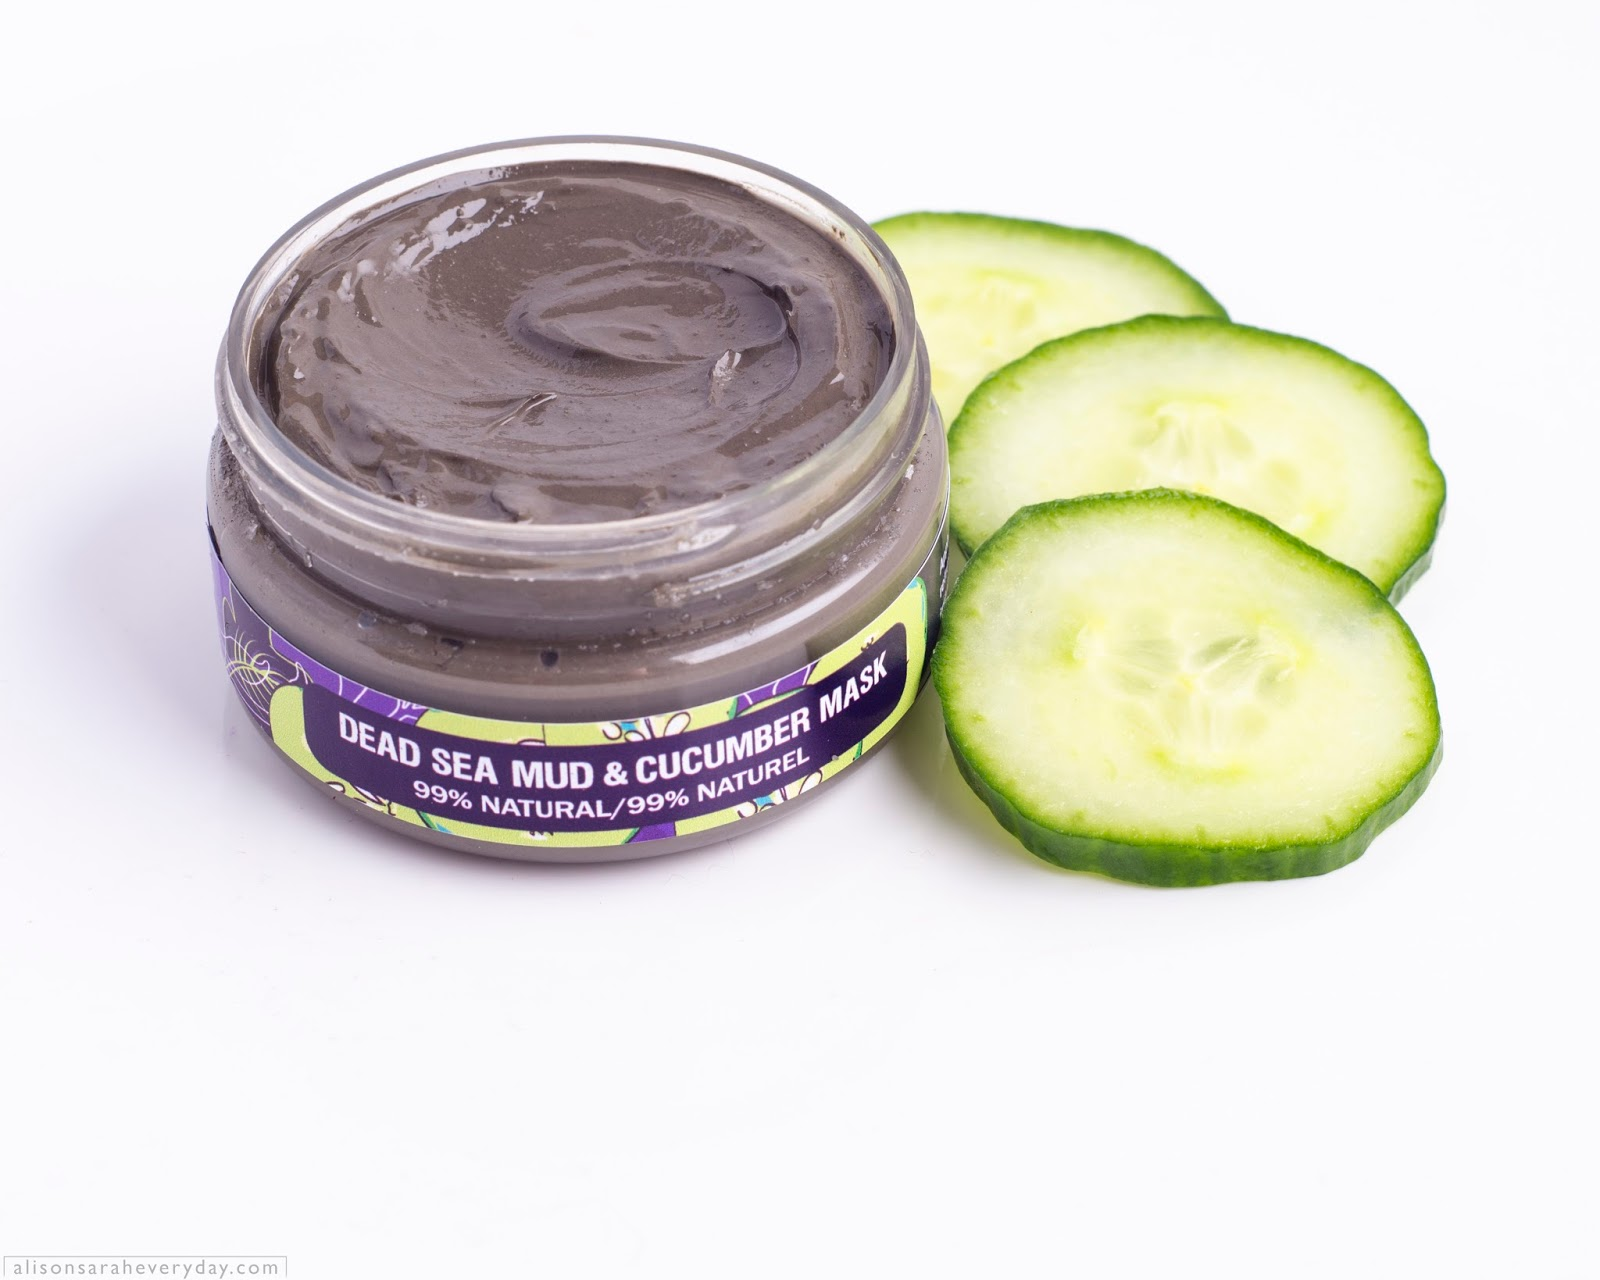 Purple Urchin Dead Sea Mud & Cucumber Mask with the lid off on a white background with cucumber slices